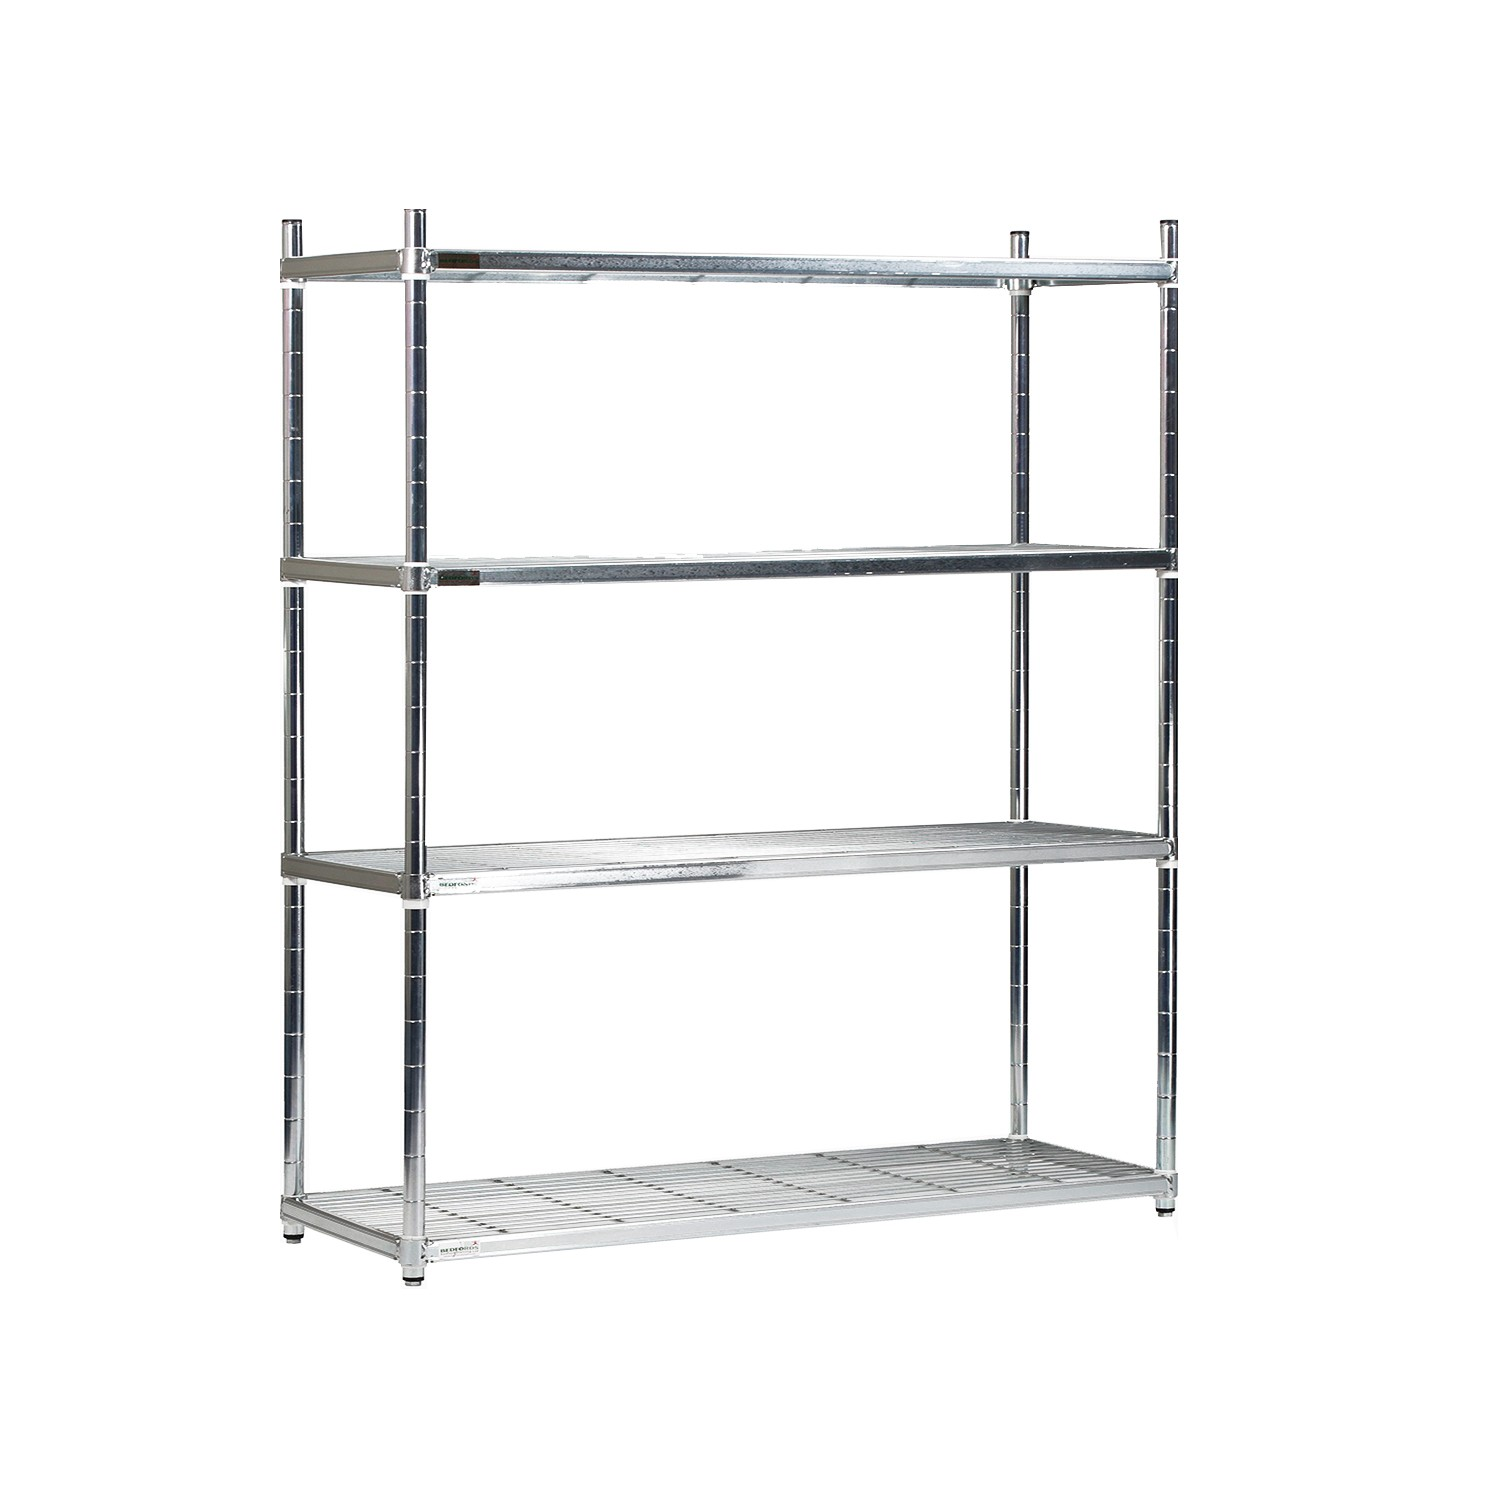 Stainless steel shelving wire shelves ss904517w